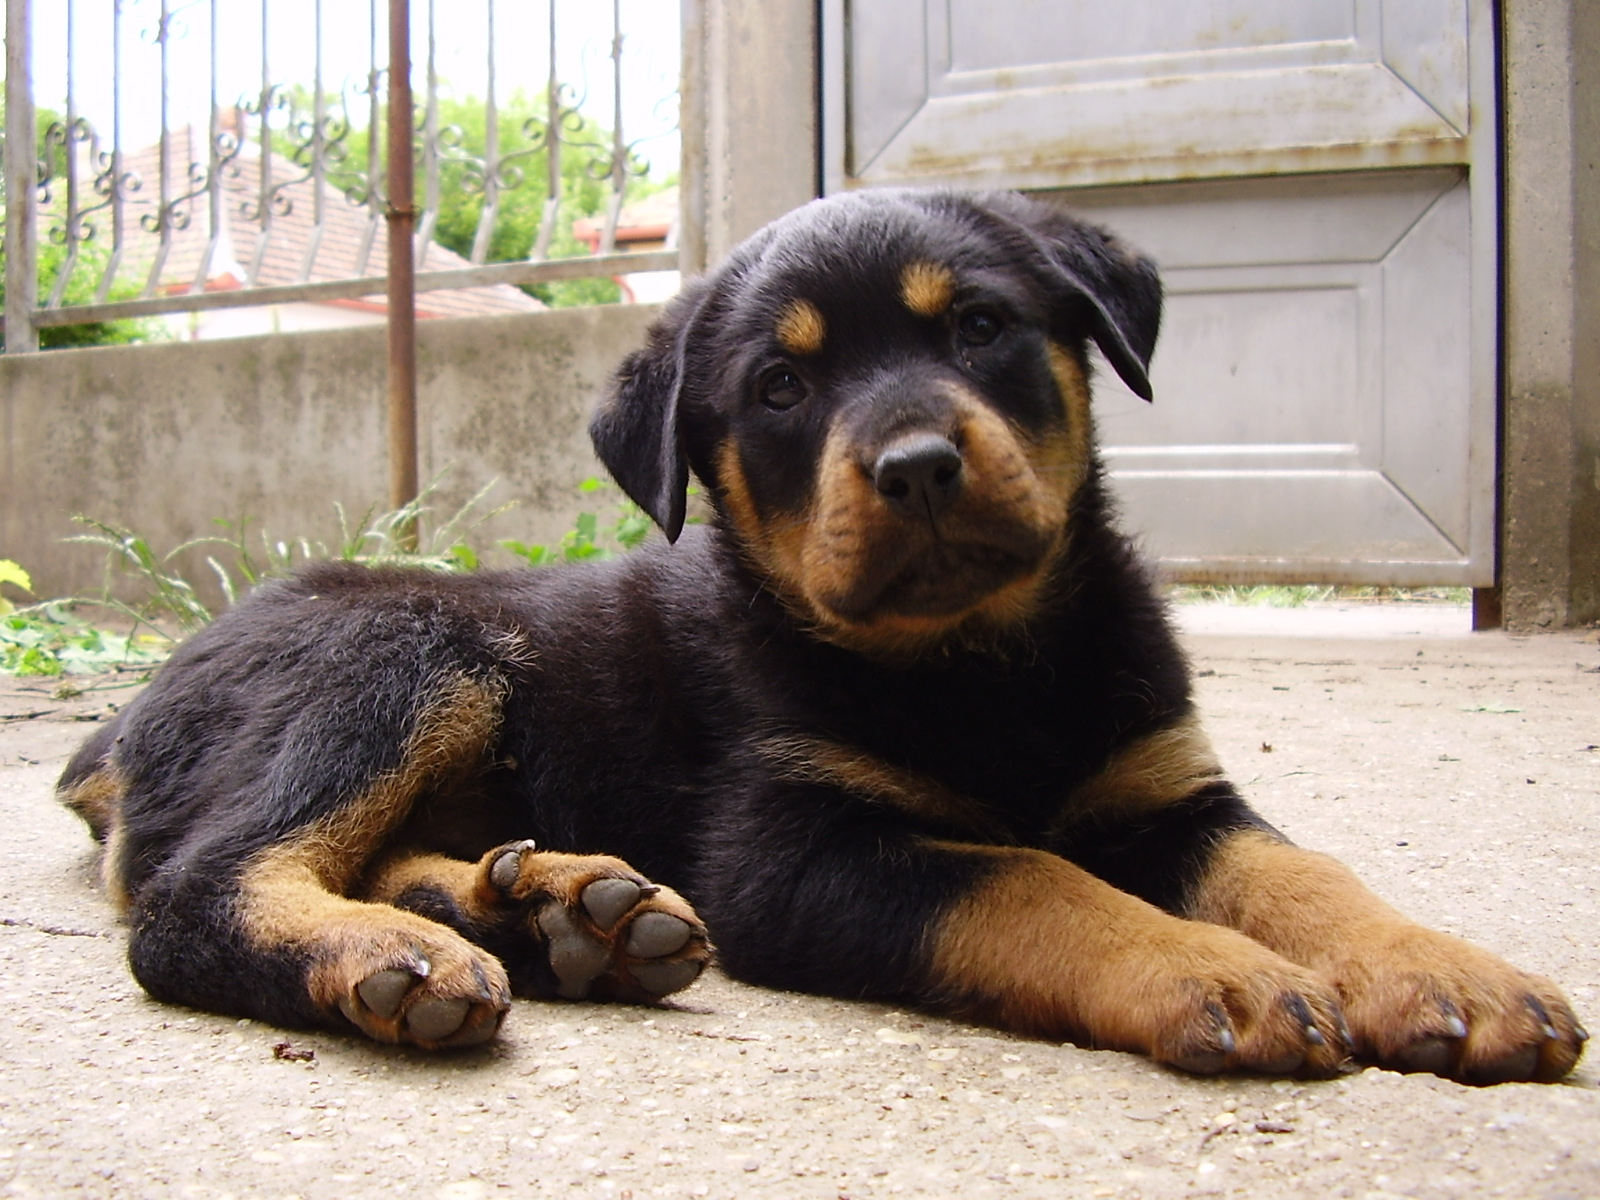 Cute Puppy Dogs: Rottweiler puppies